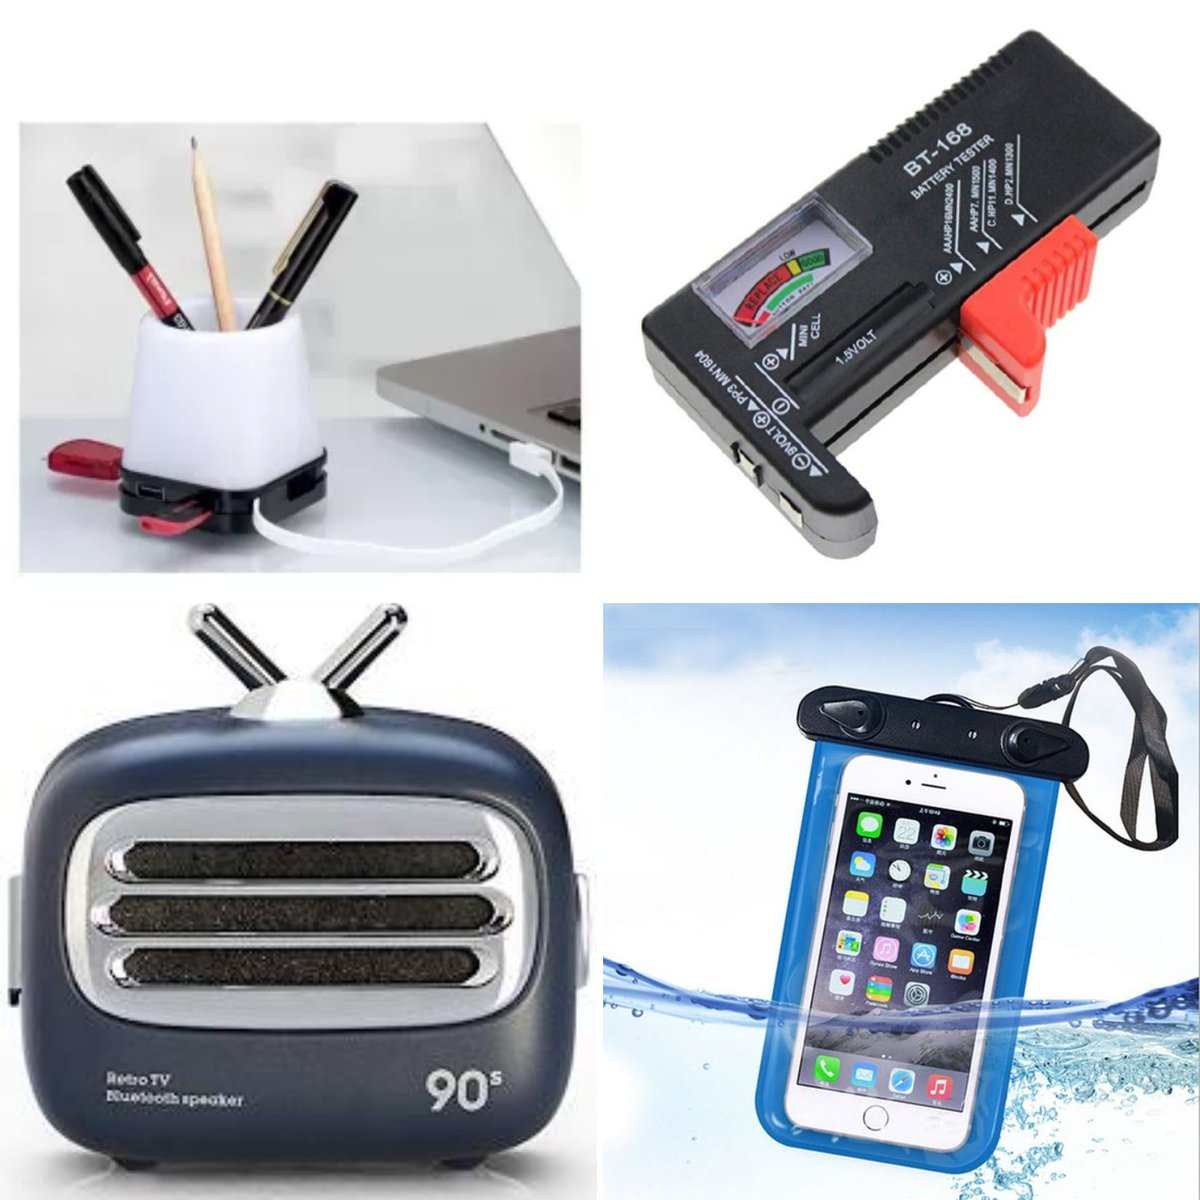 Add-on the perfect #accessory to your #mobile. Find #Cases & #Covers, Screen Protectors, Power banks, Bluetooth headsets, Wired #Headsets, Data Cables, Mobile #Chargers  & Many more from our website : http://rbotronics.com   #shopping #india #buy #retweet #follow #like #Viral